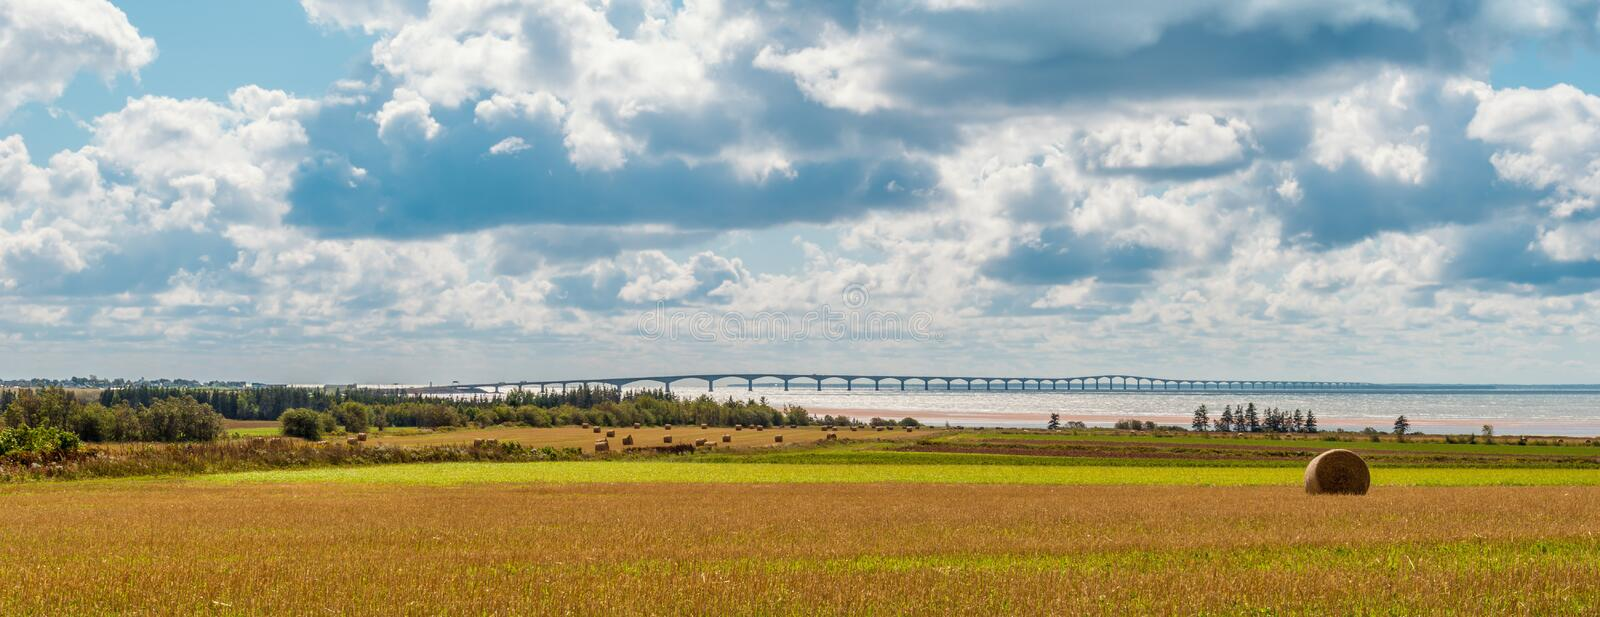 Panorama of hay bales on a farm along the ocean with the Confederation Bridge in the background. (Prince Edward Island, Canada stock image